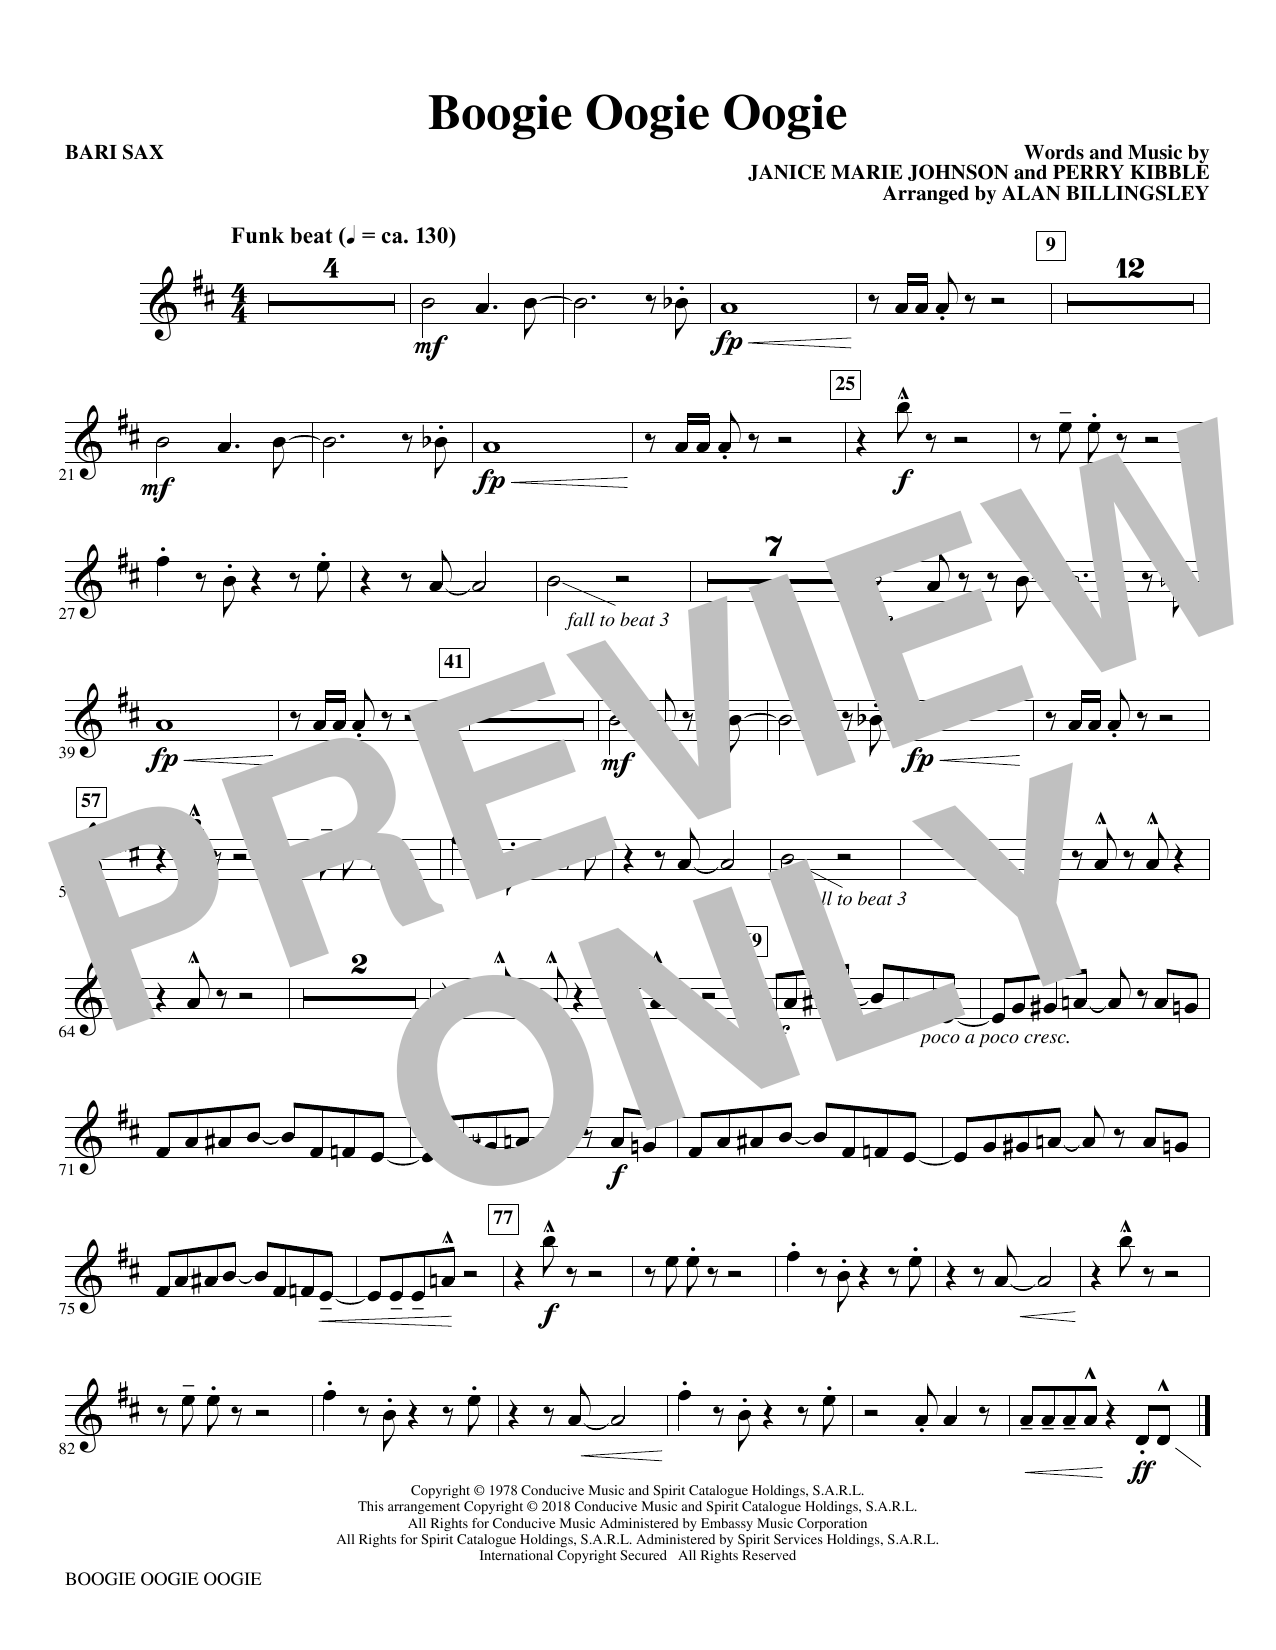 Download A Taste Of Honey 'Boogie Oogie Oogie (arr. Alan Billingsley) - Baritone Sax' Digital Sheet Music Notes & Chords and start playing in minutes